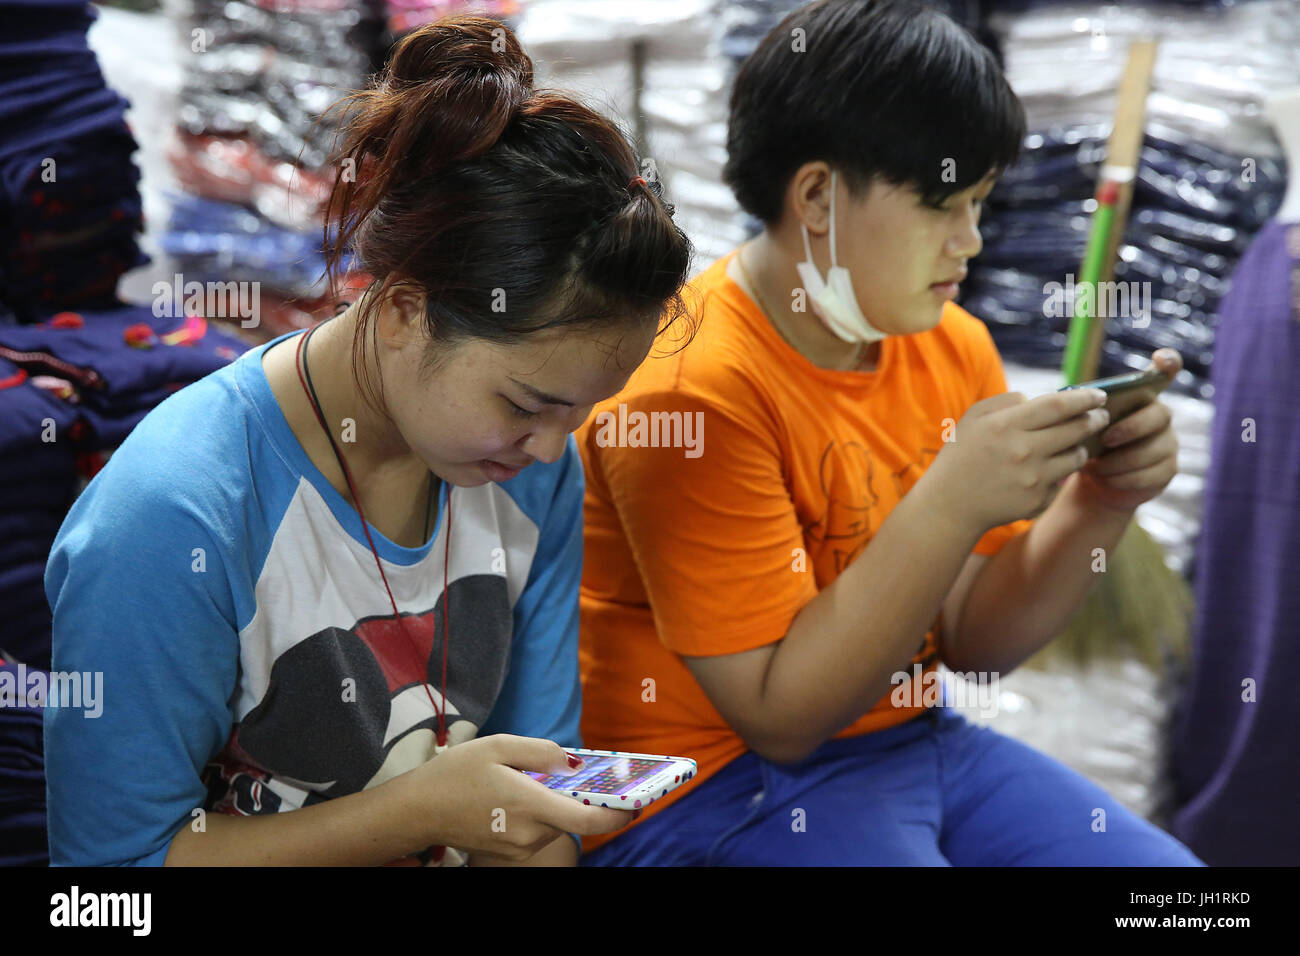 Thai shopkeepers using cell phones. Thailand. - Stock Image